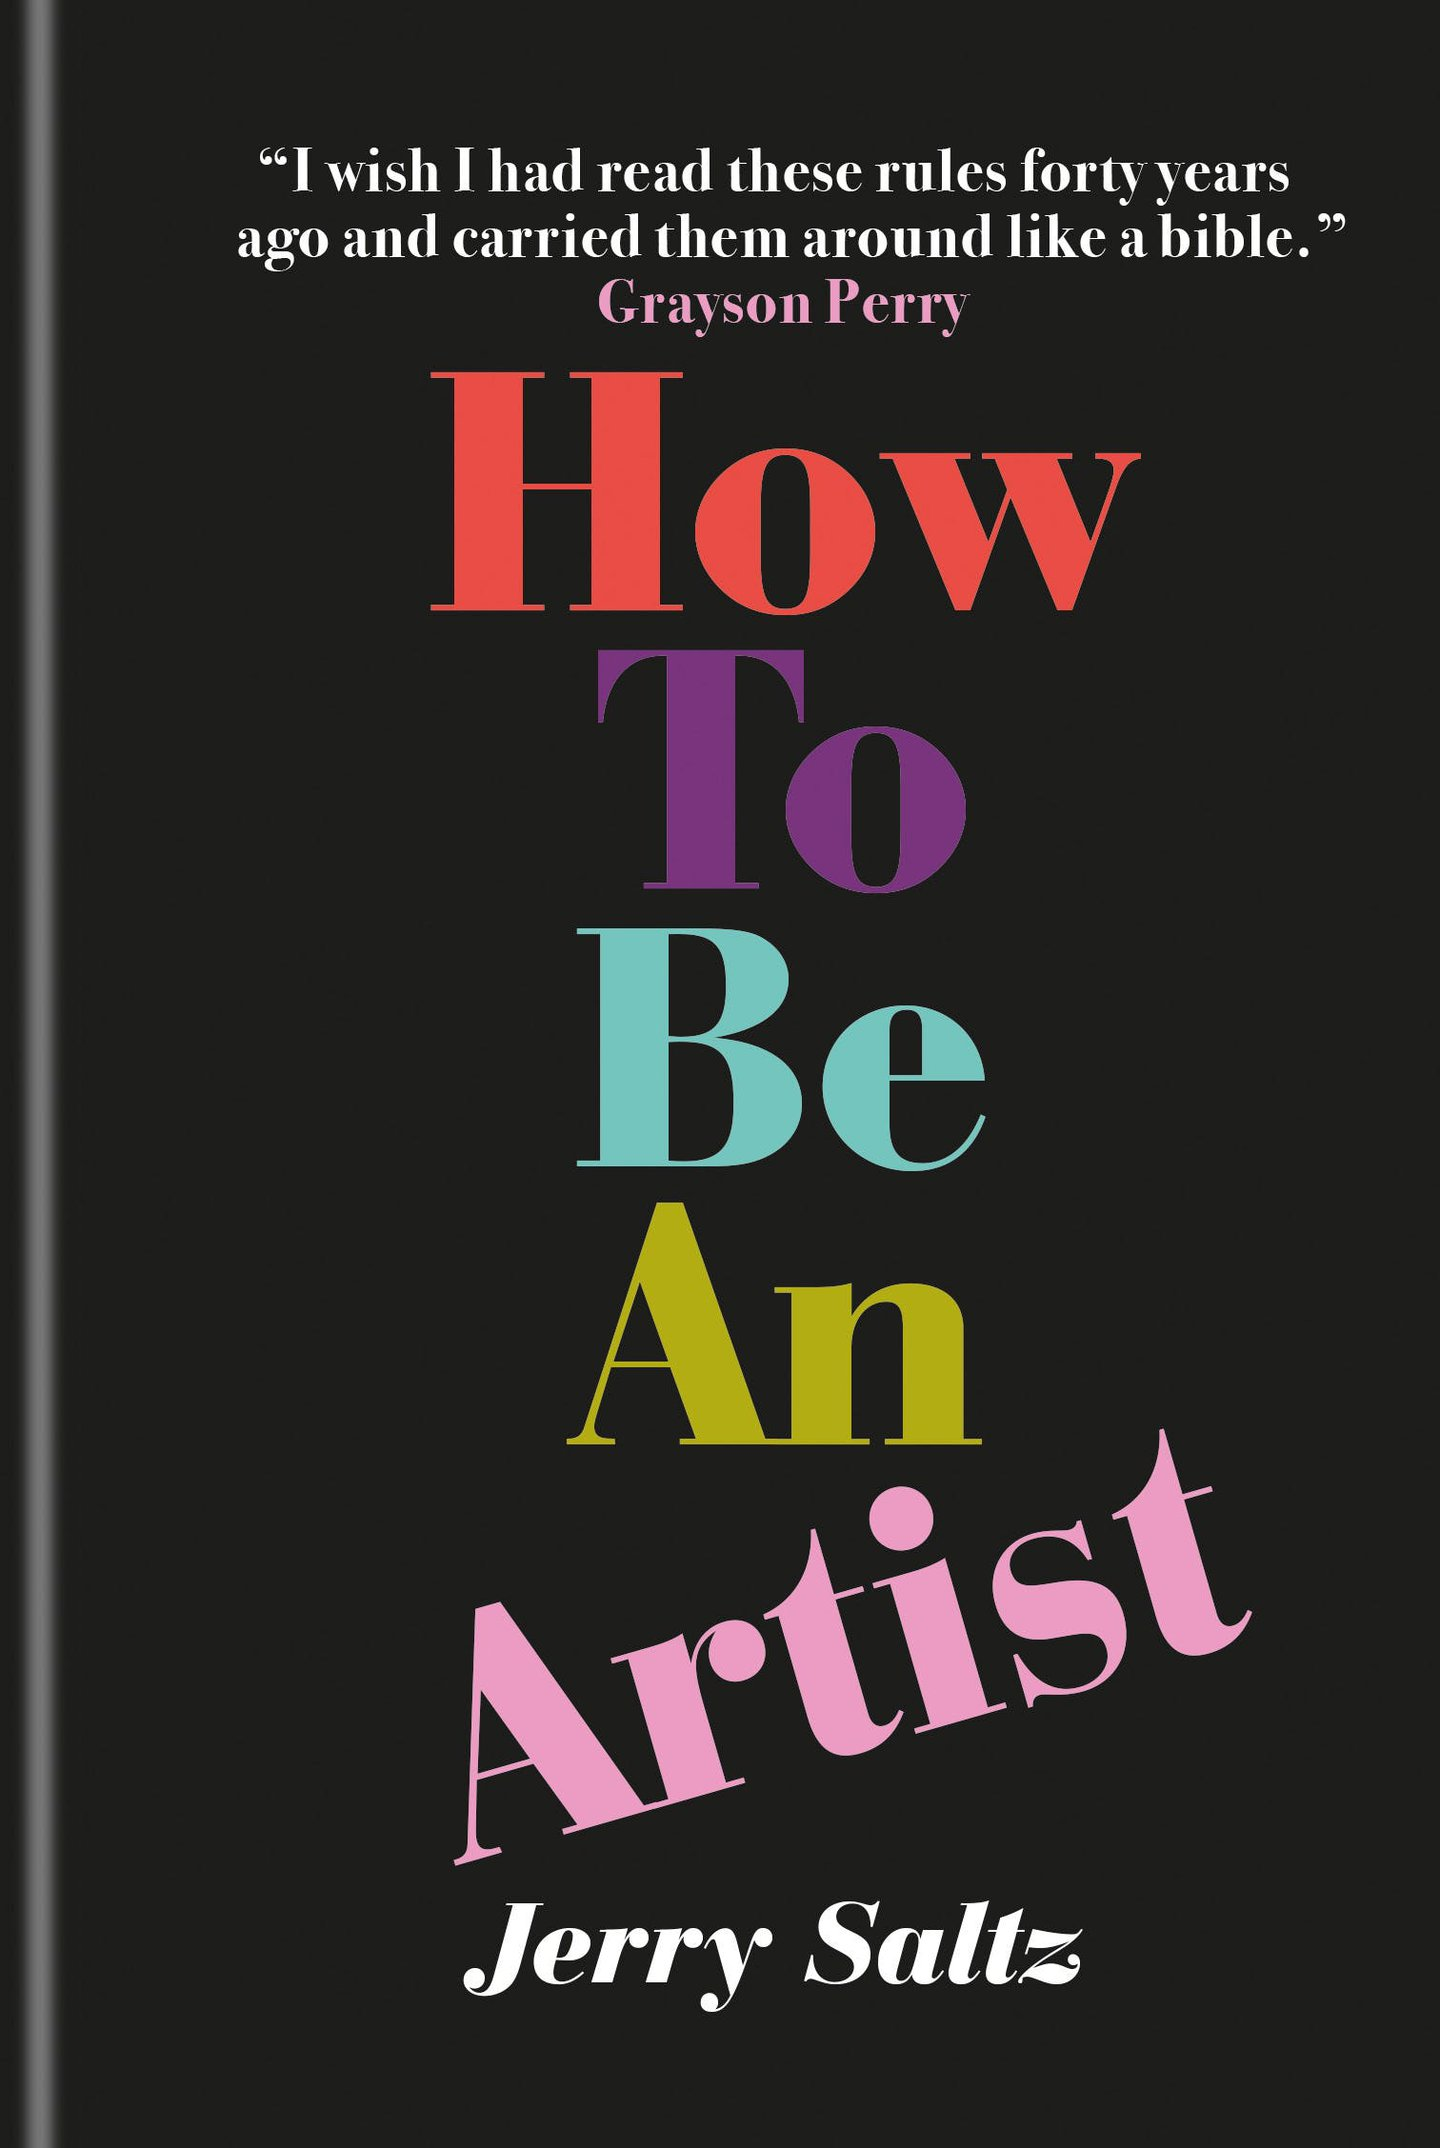 Jerry Saltz lays the creative process bare in How to be an Artist, the book